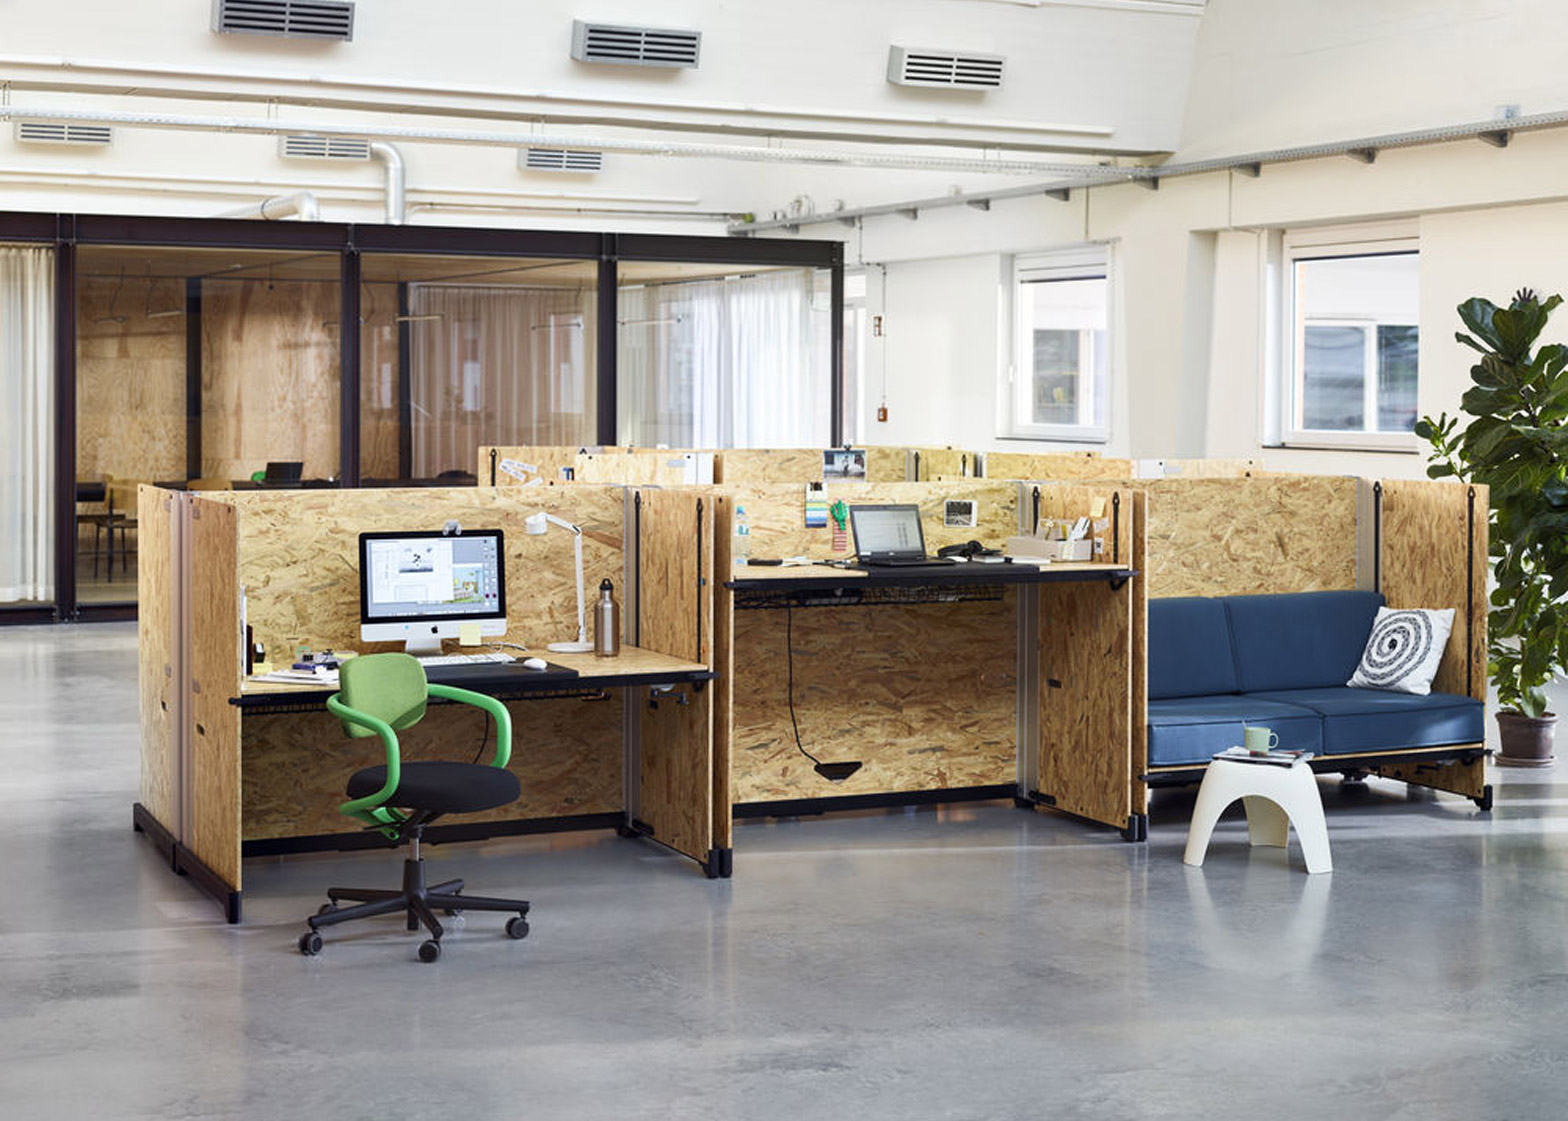 designing the ultimate workspace vitra features desks that can be